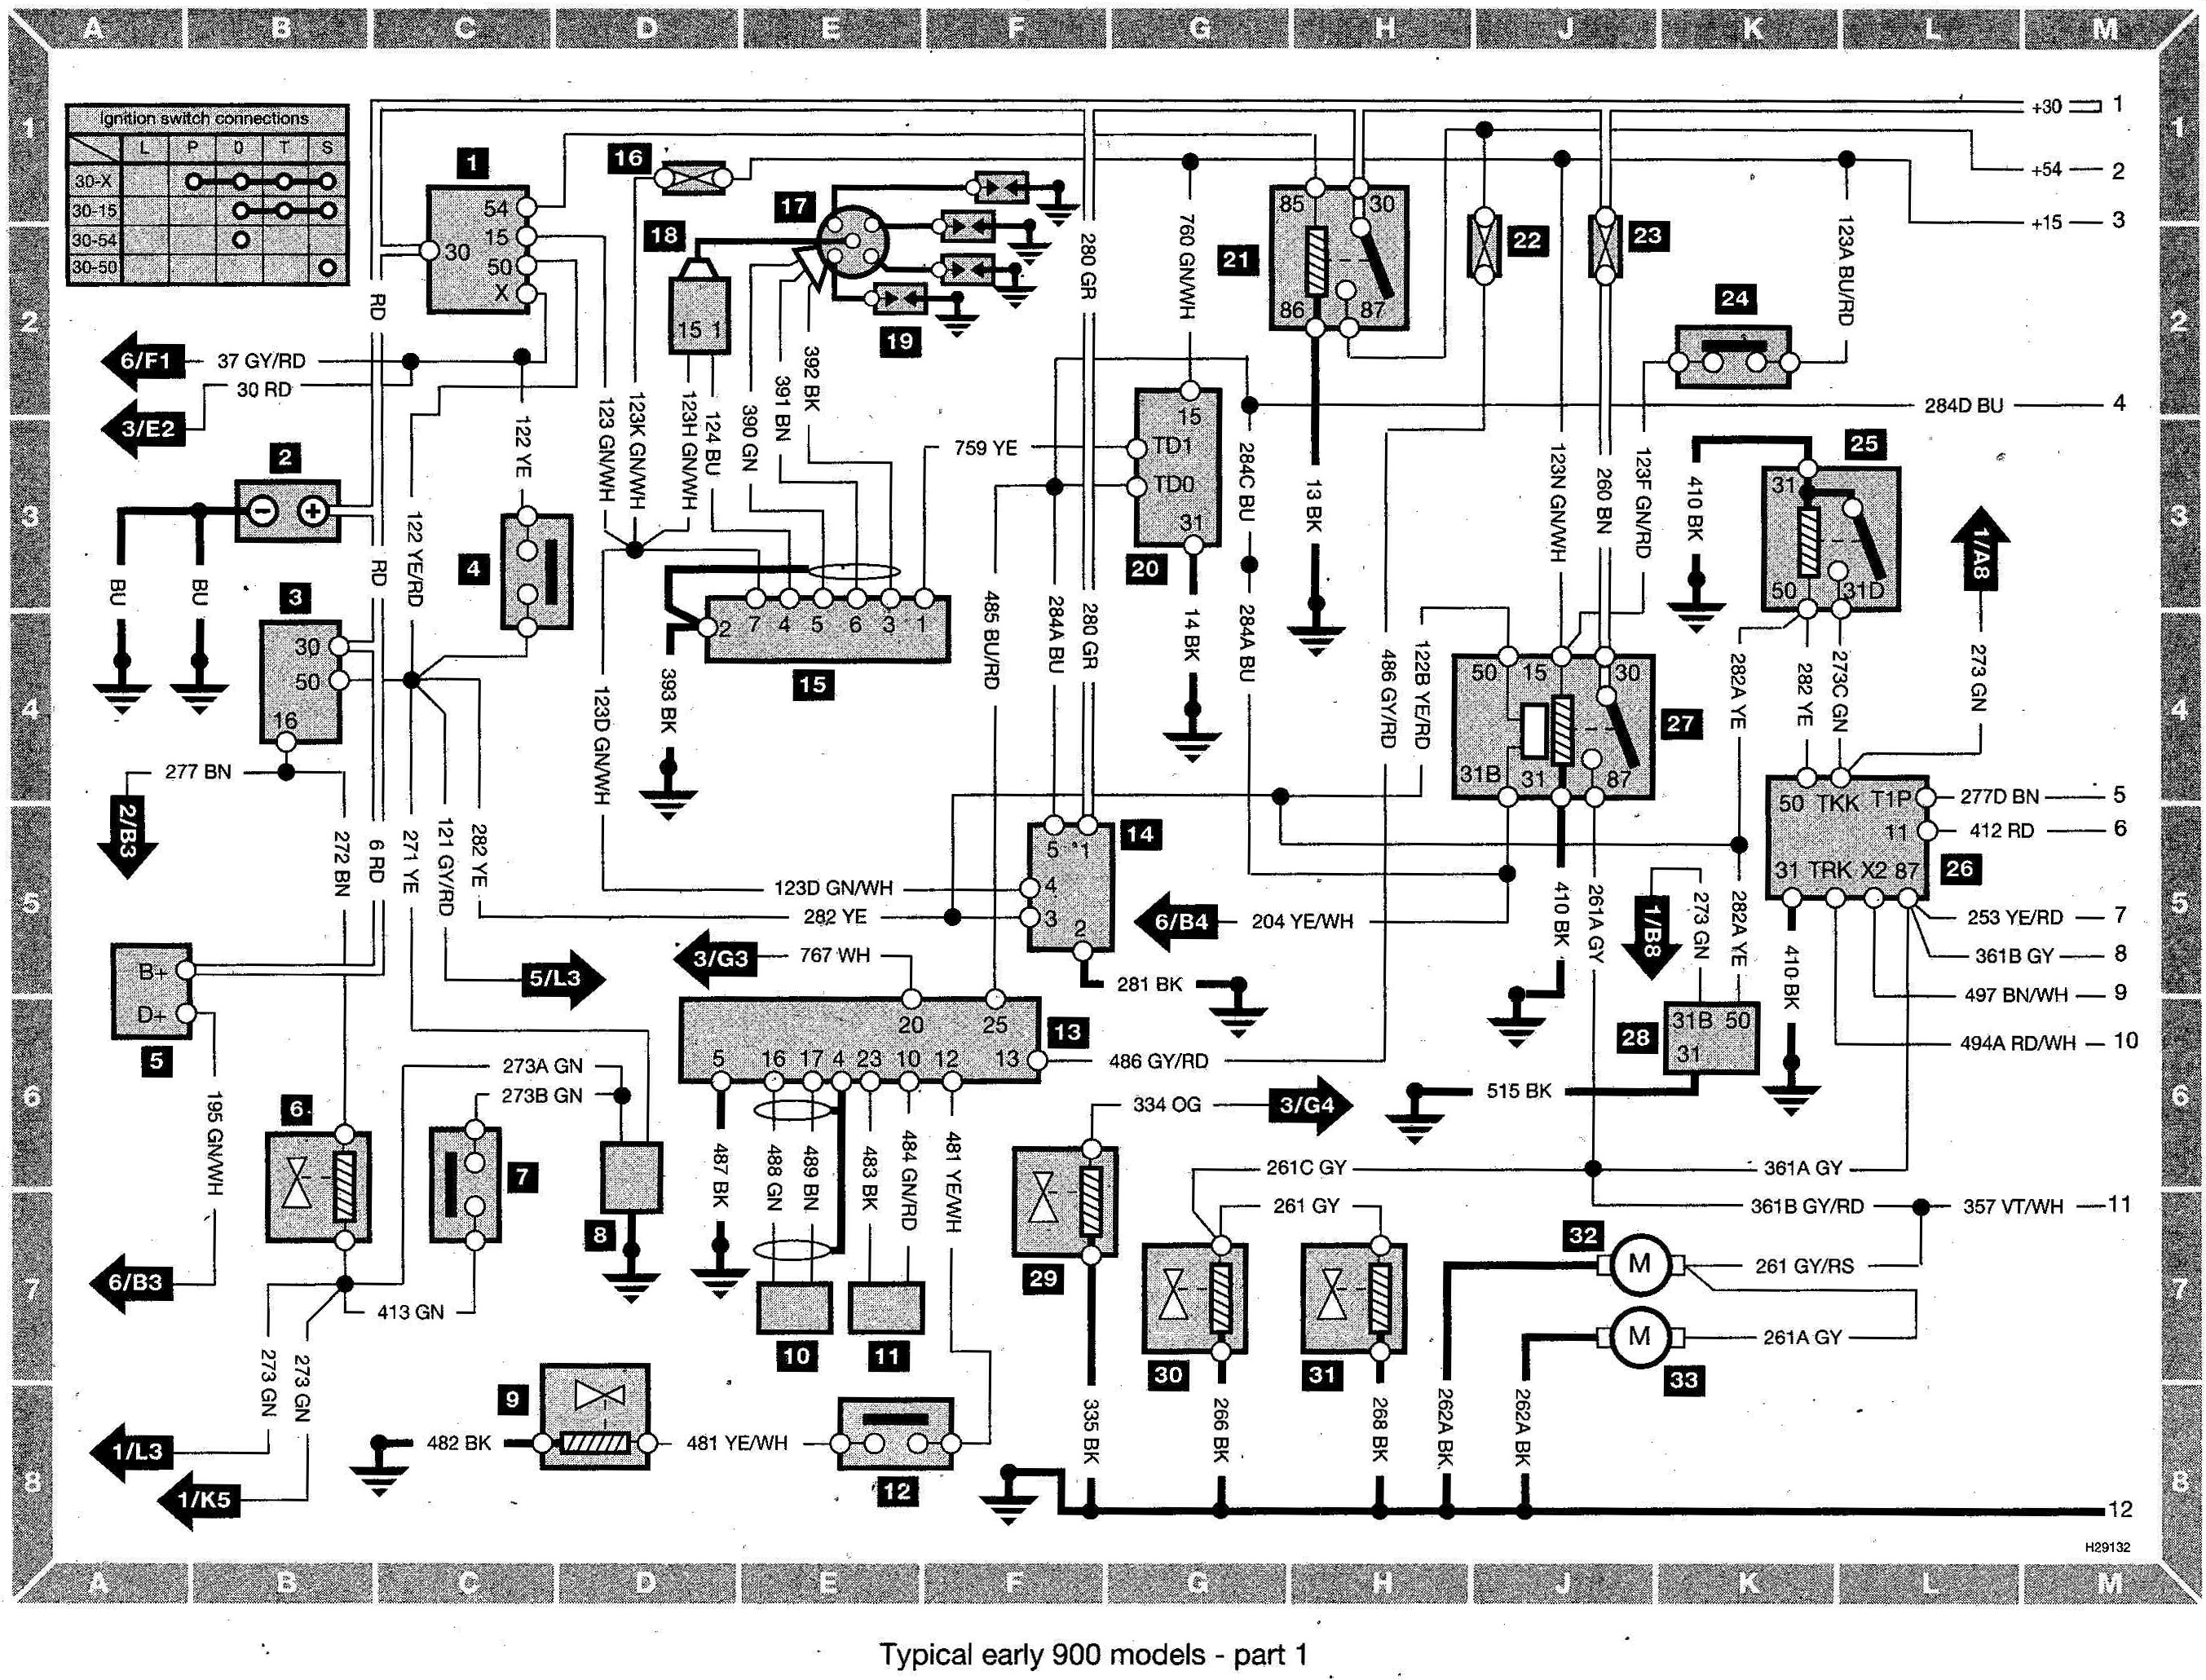 Truck Lite 900 Wiring Diagram from 2020cadillac.com